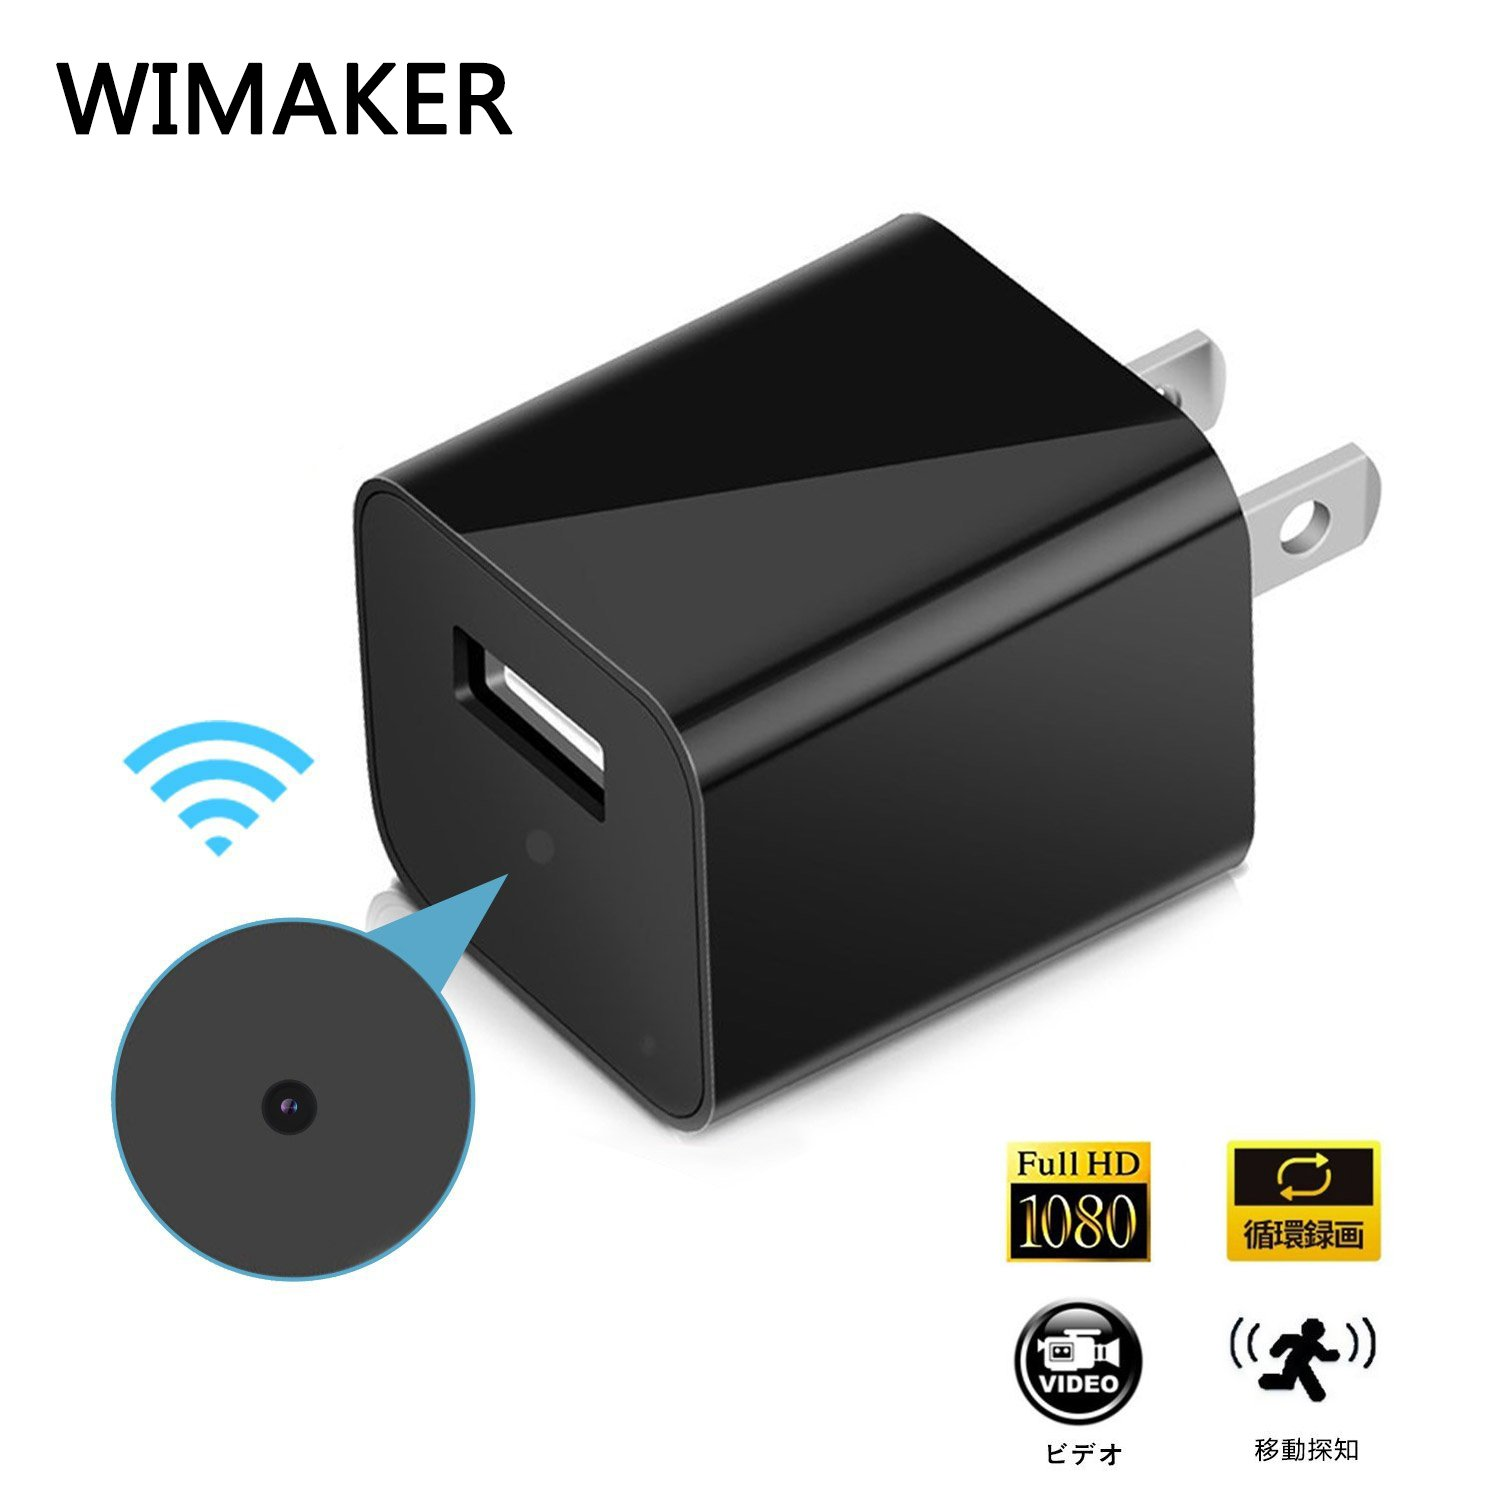 Wimaker HD 1080P WiFi Mini Spy Hidden Camera with Motion Detection WiFi Remote View Alarm Message Recorde Video Home Security Surveillance Hidden IP Cameras